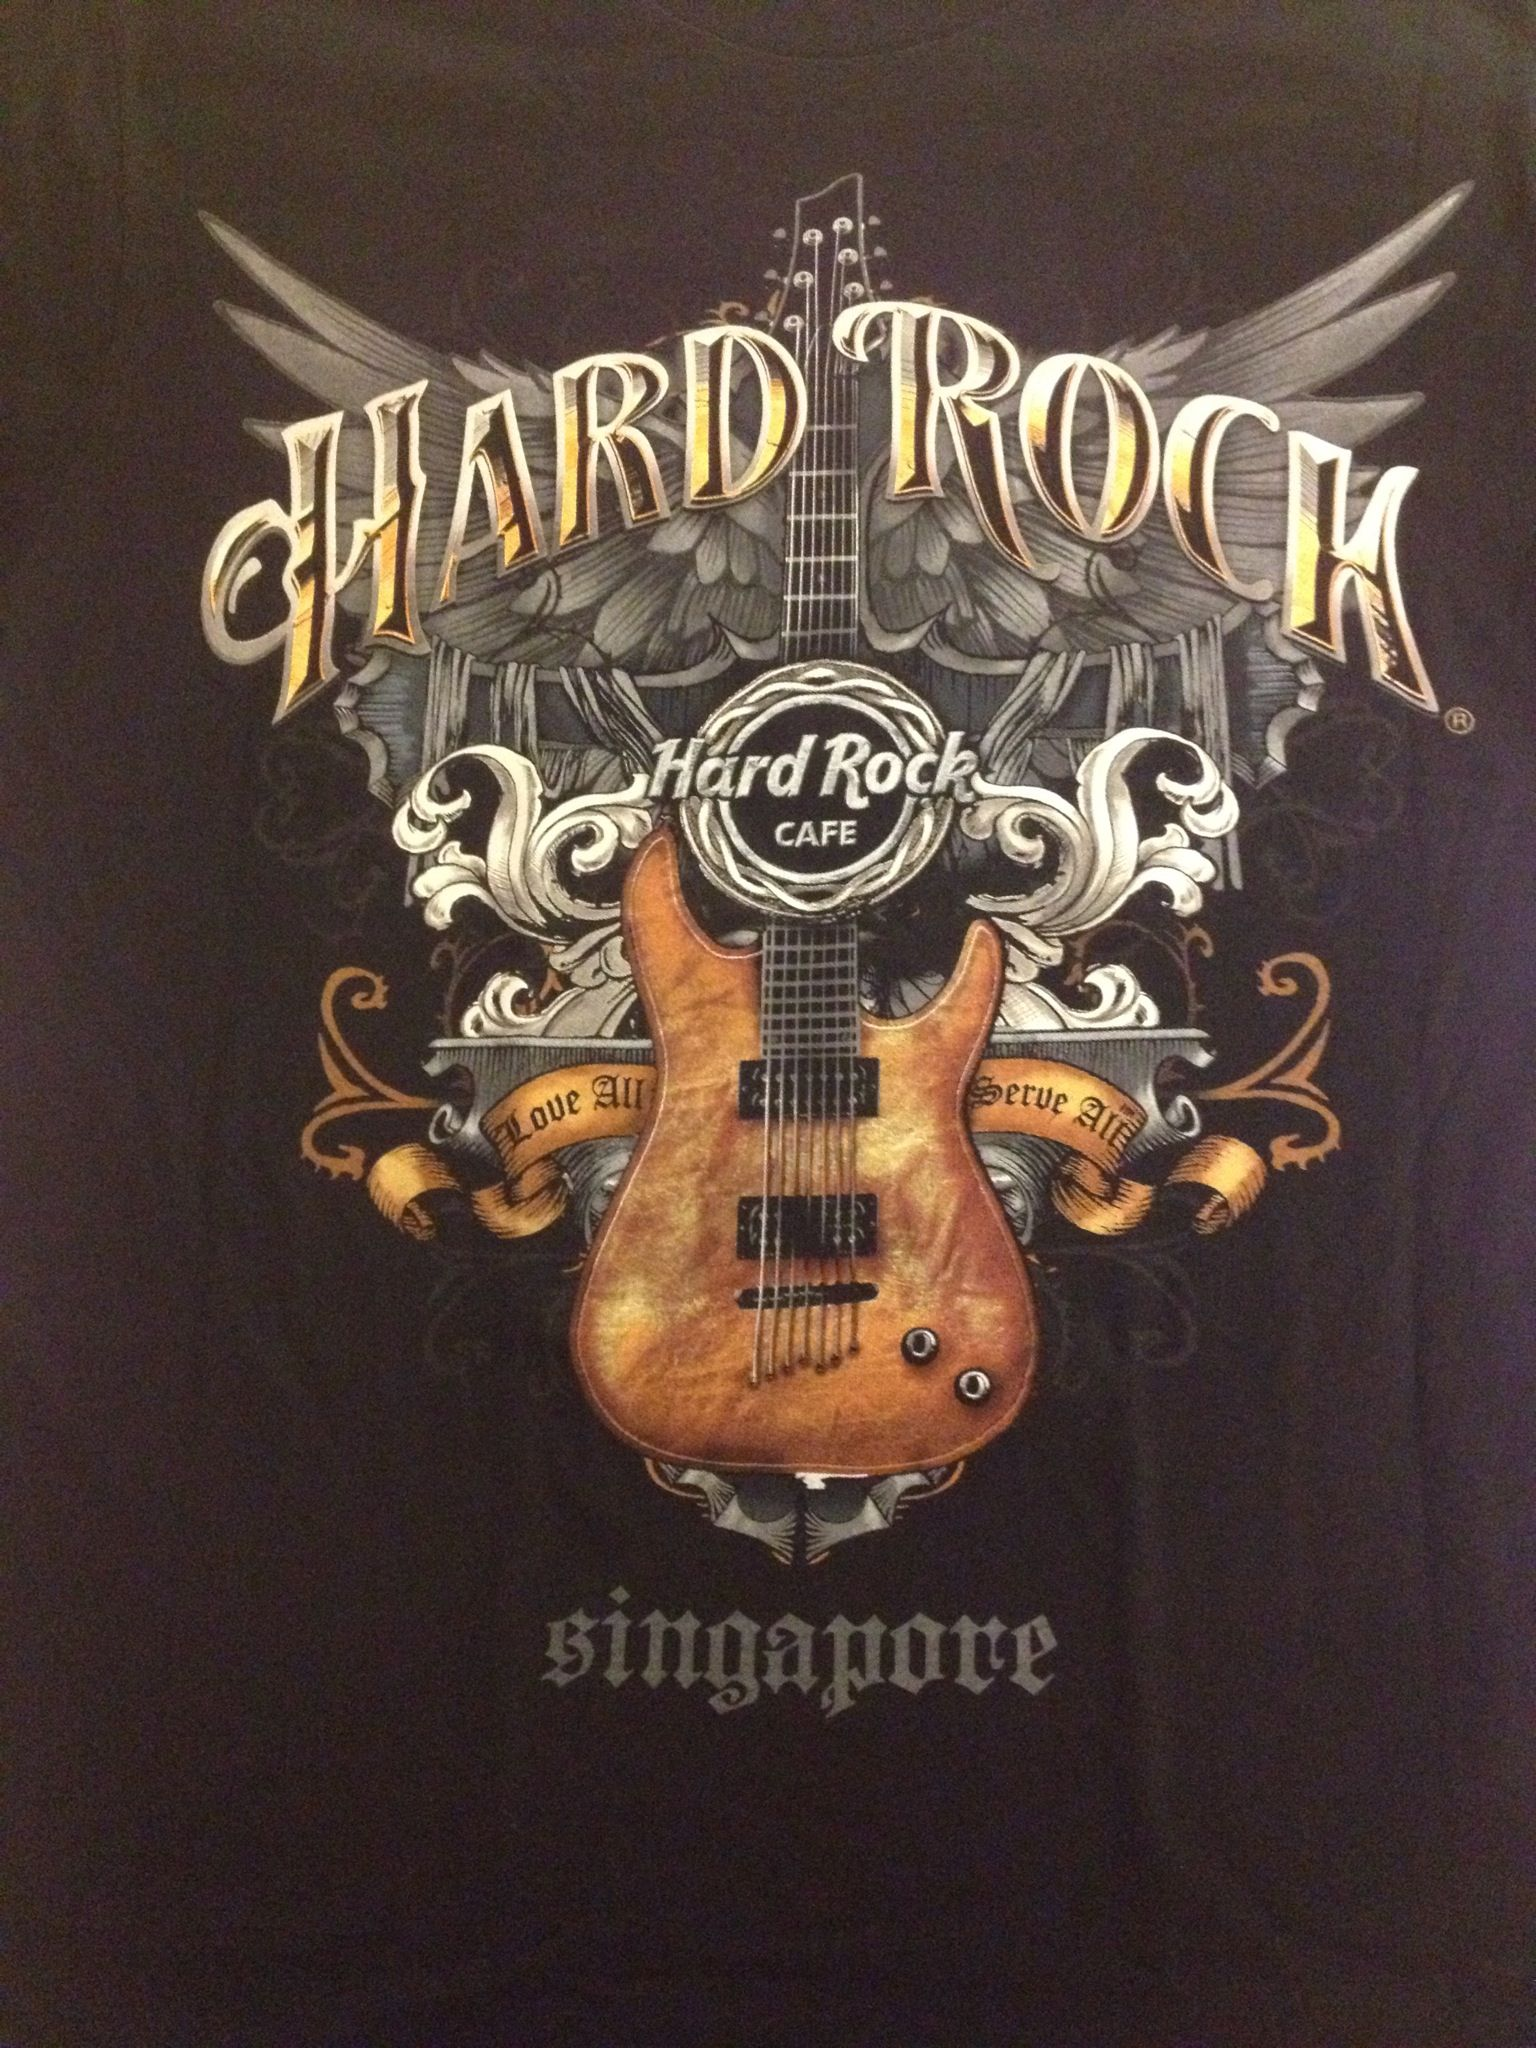 Design your own t shirt in singapore - Hard Rock Cafe Singapore T Shirt